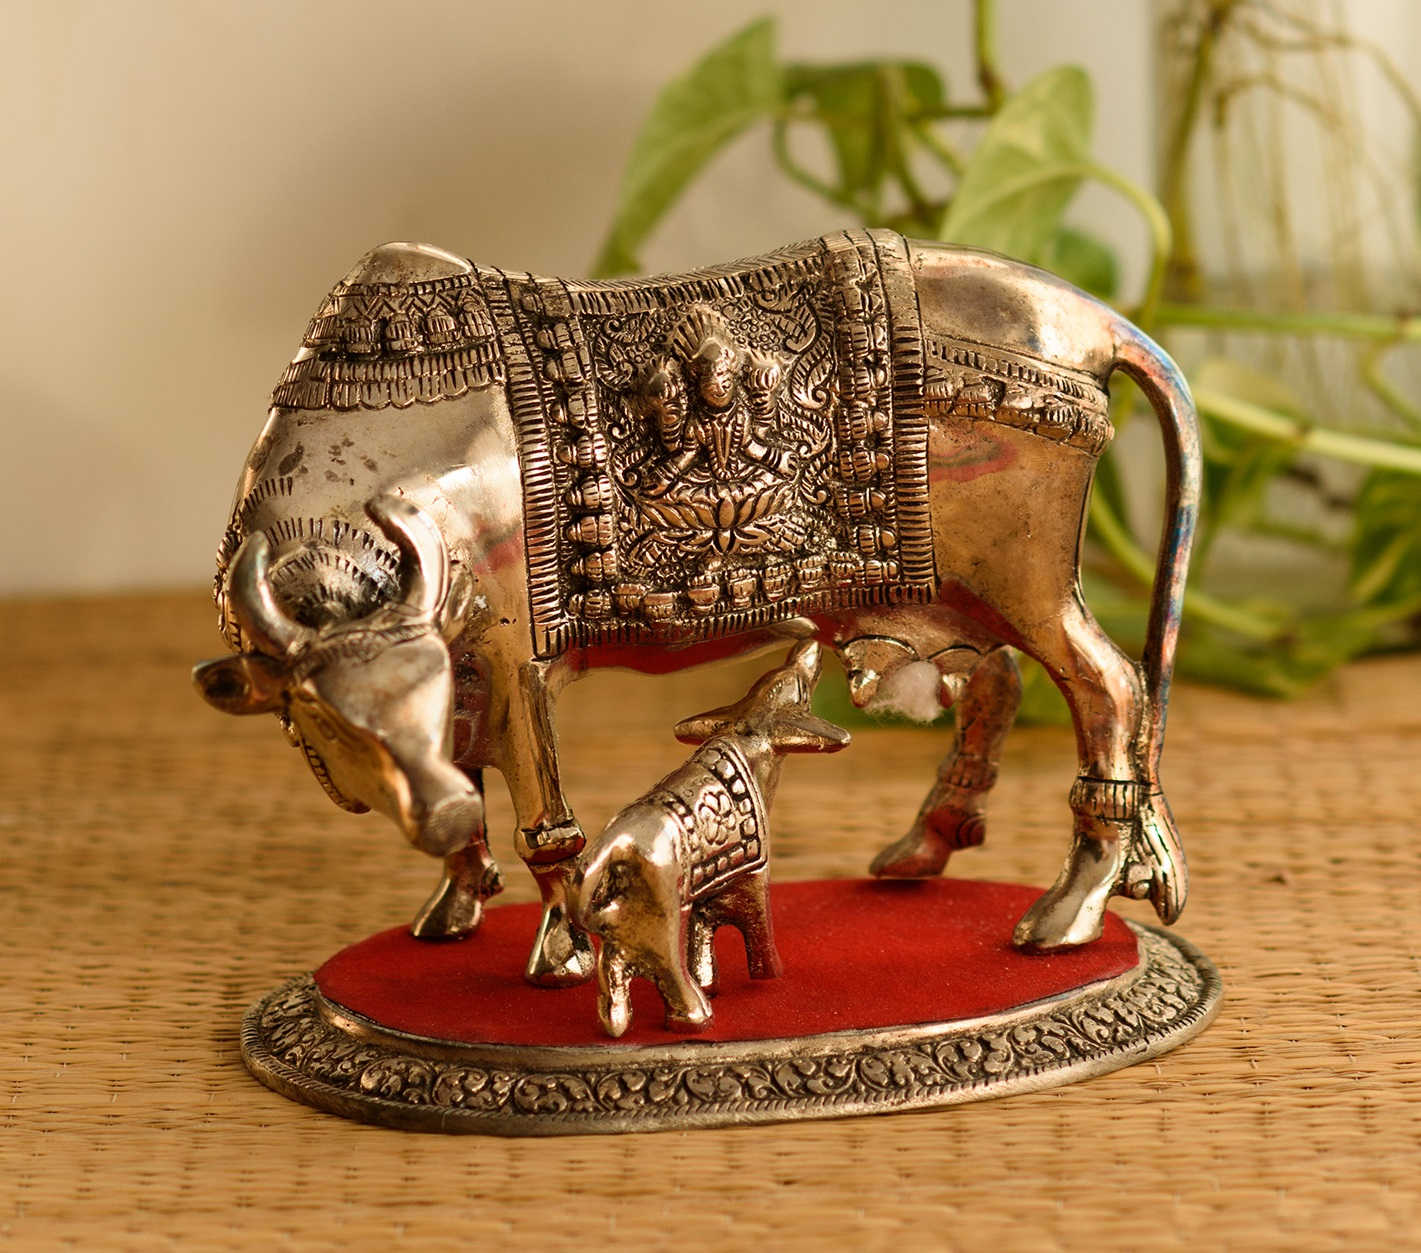 White Metal Decorative Cow with Calf statue Indian Home Decor